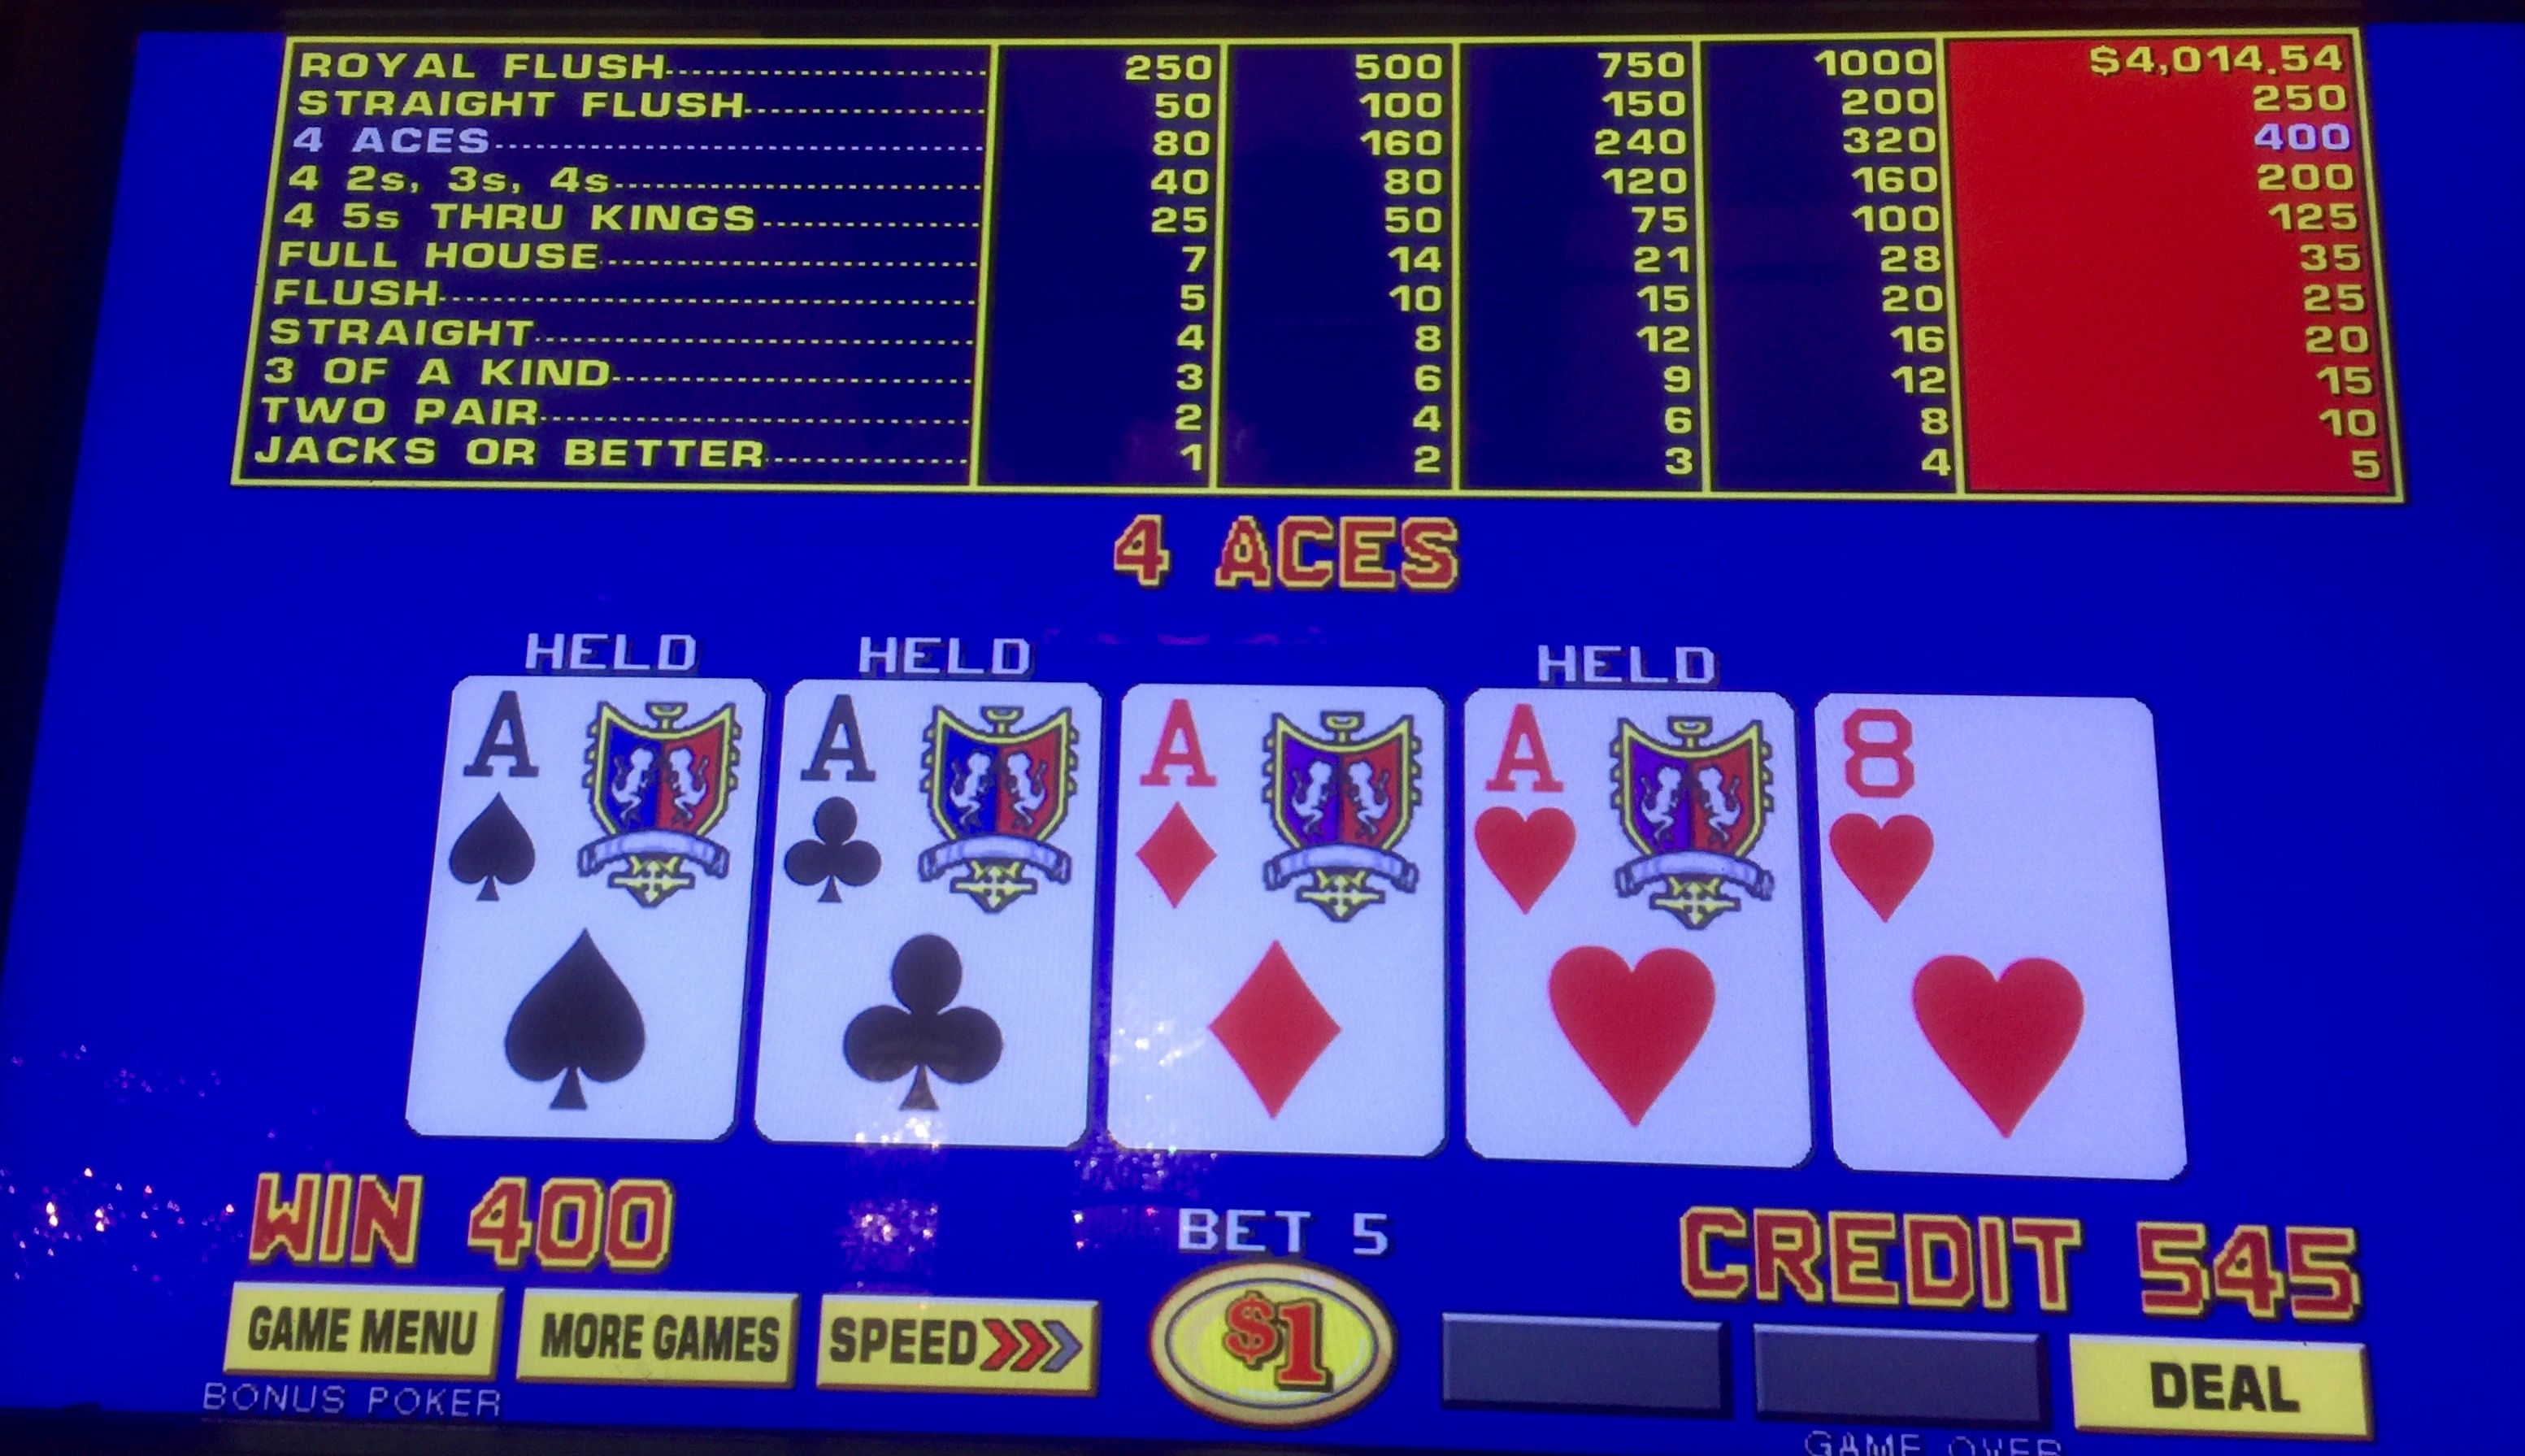 I just love to catch Four Aces. On this day I had been